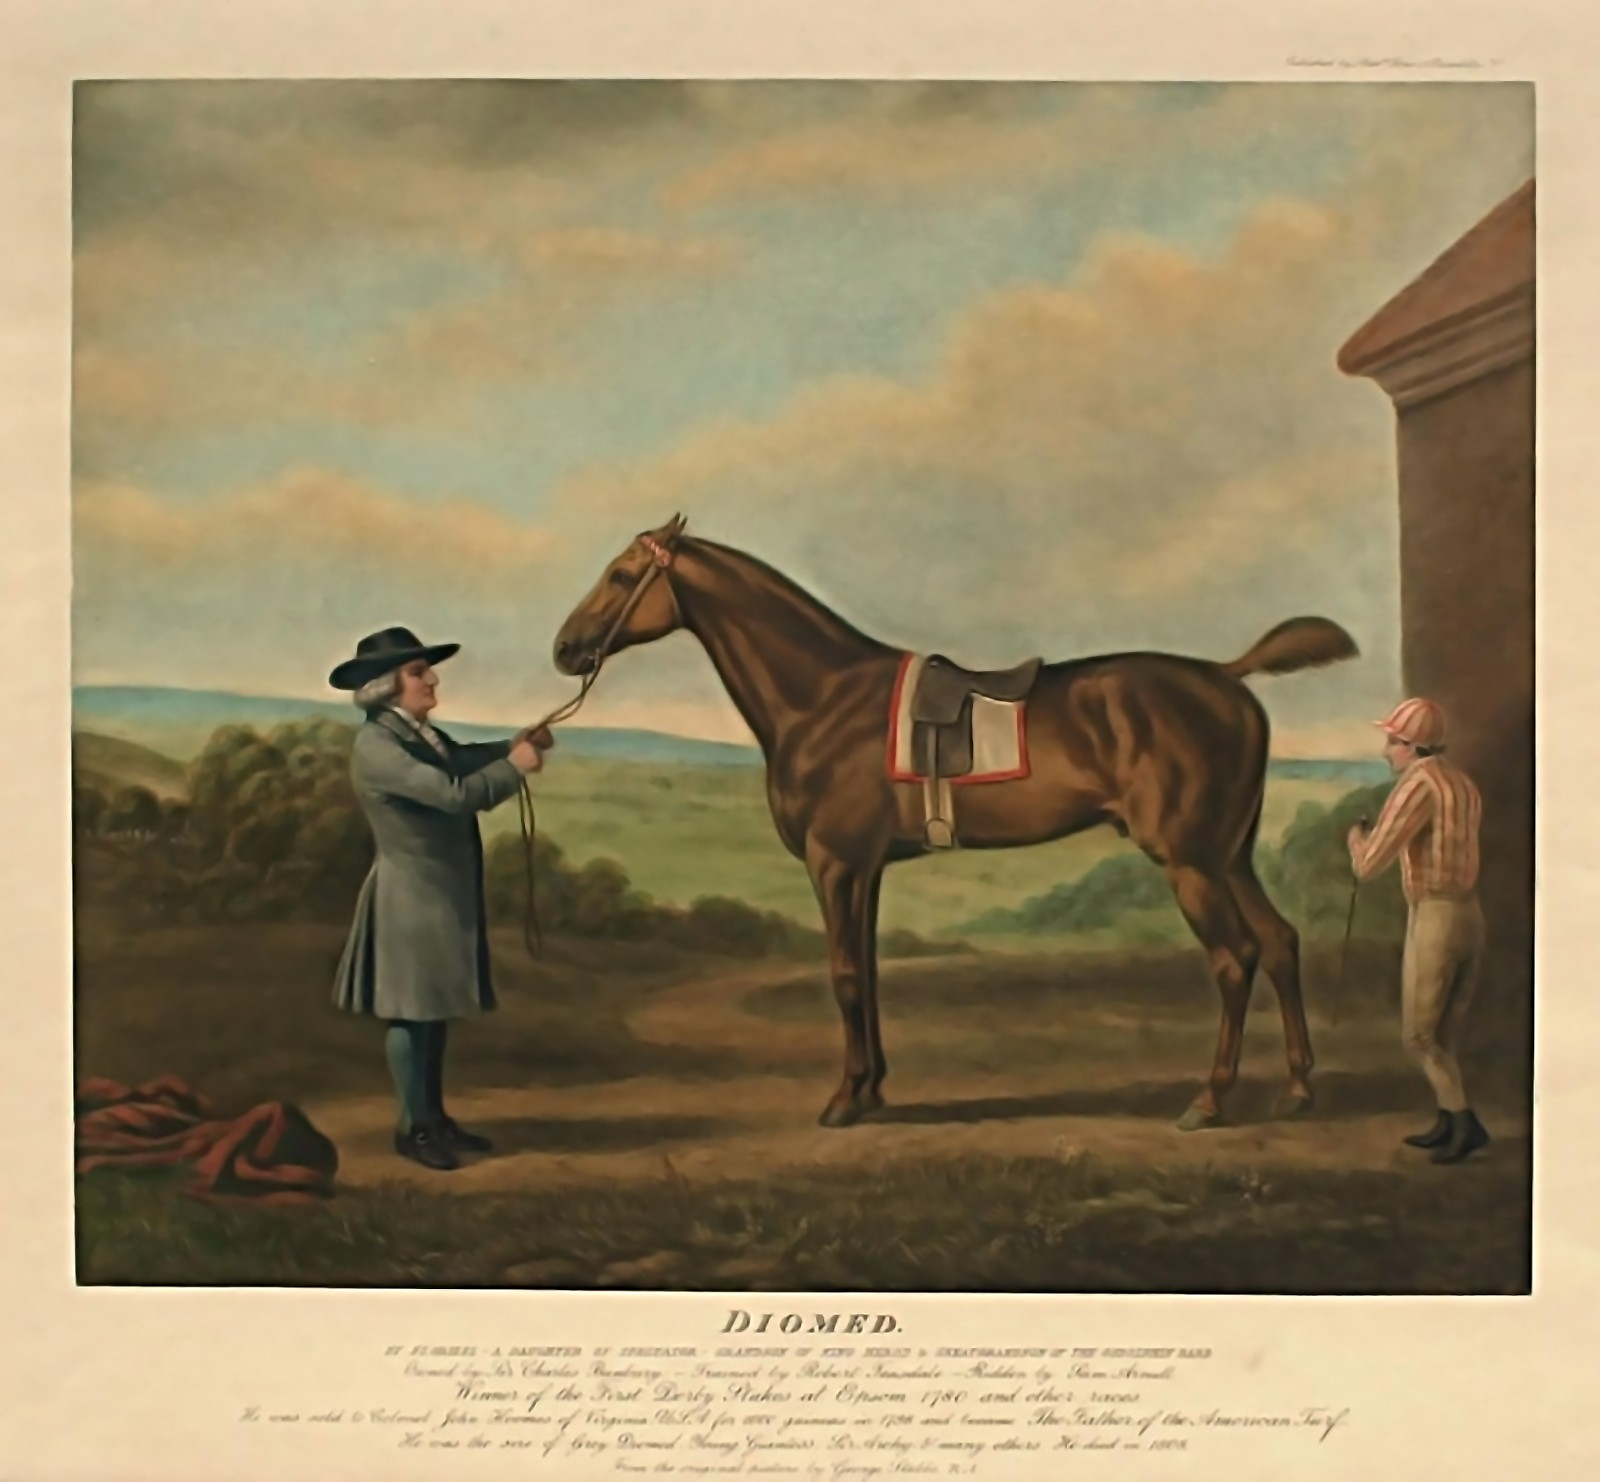 <strong>Diomed</strong> by George Stubbs, 19th century.